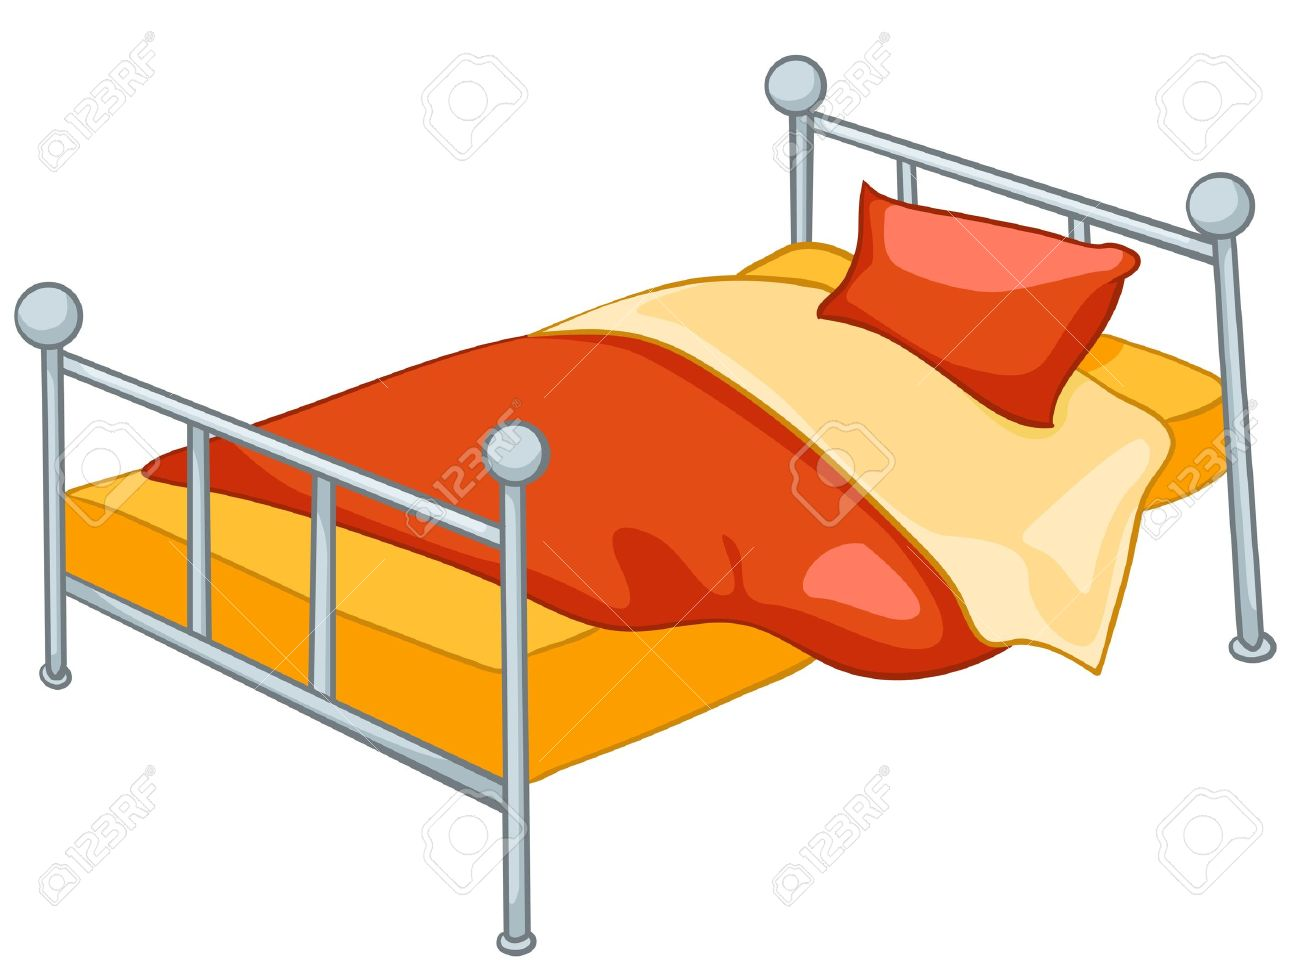 Home furniture bed - Cartoon Home Furniture Bed Stock Vector 12491806